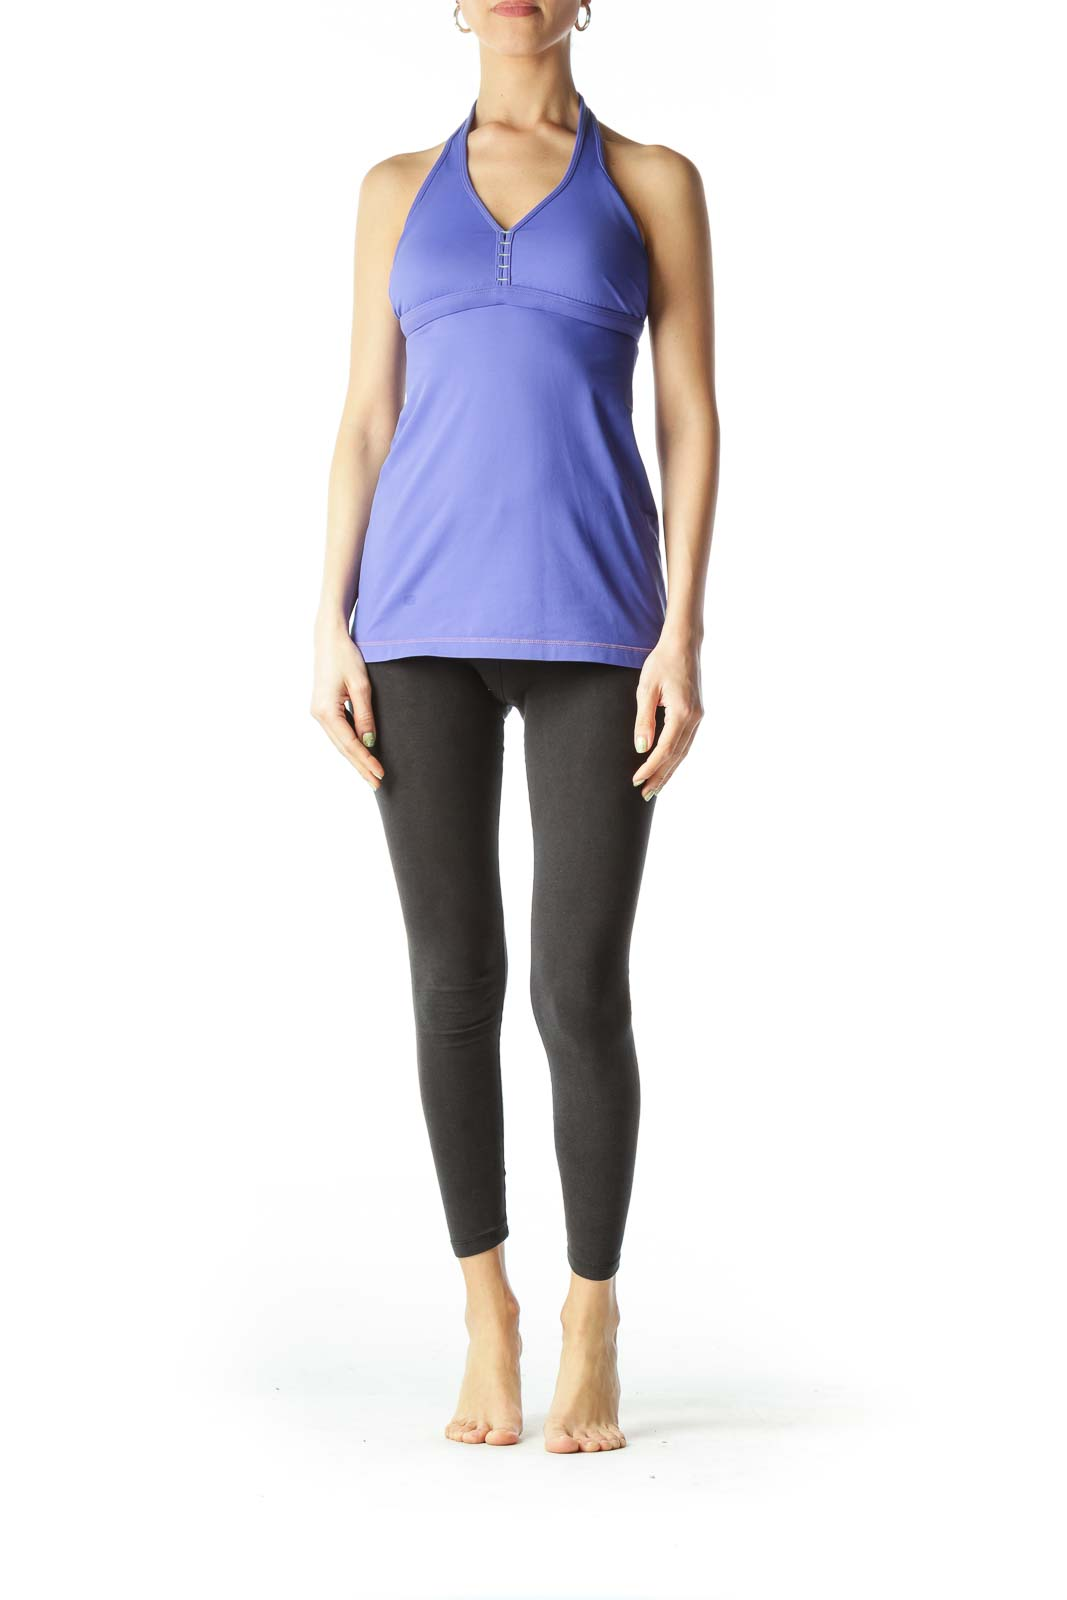 Purple Haltered Yoga Tank